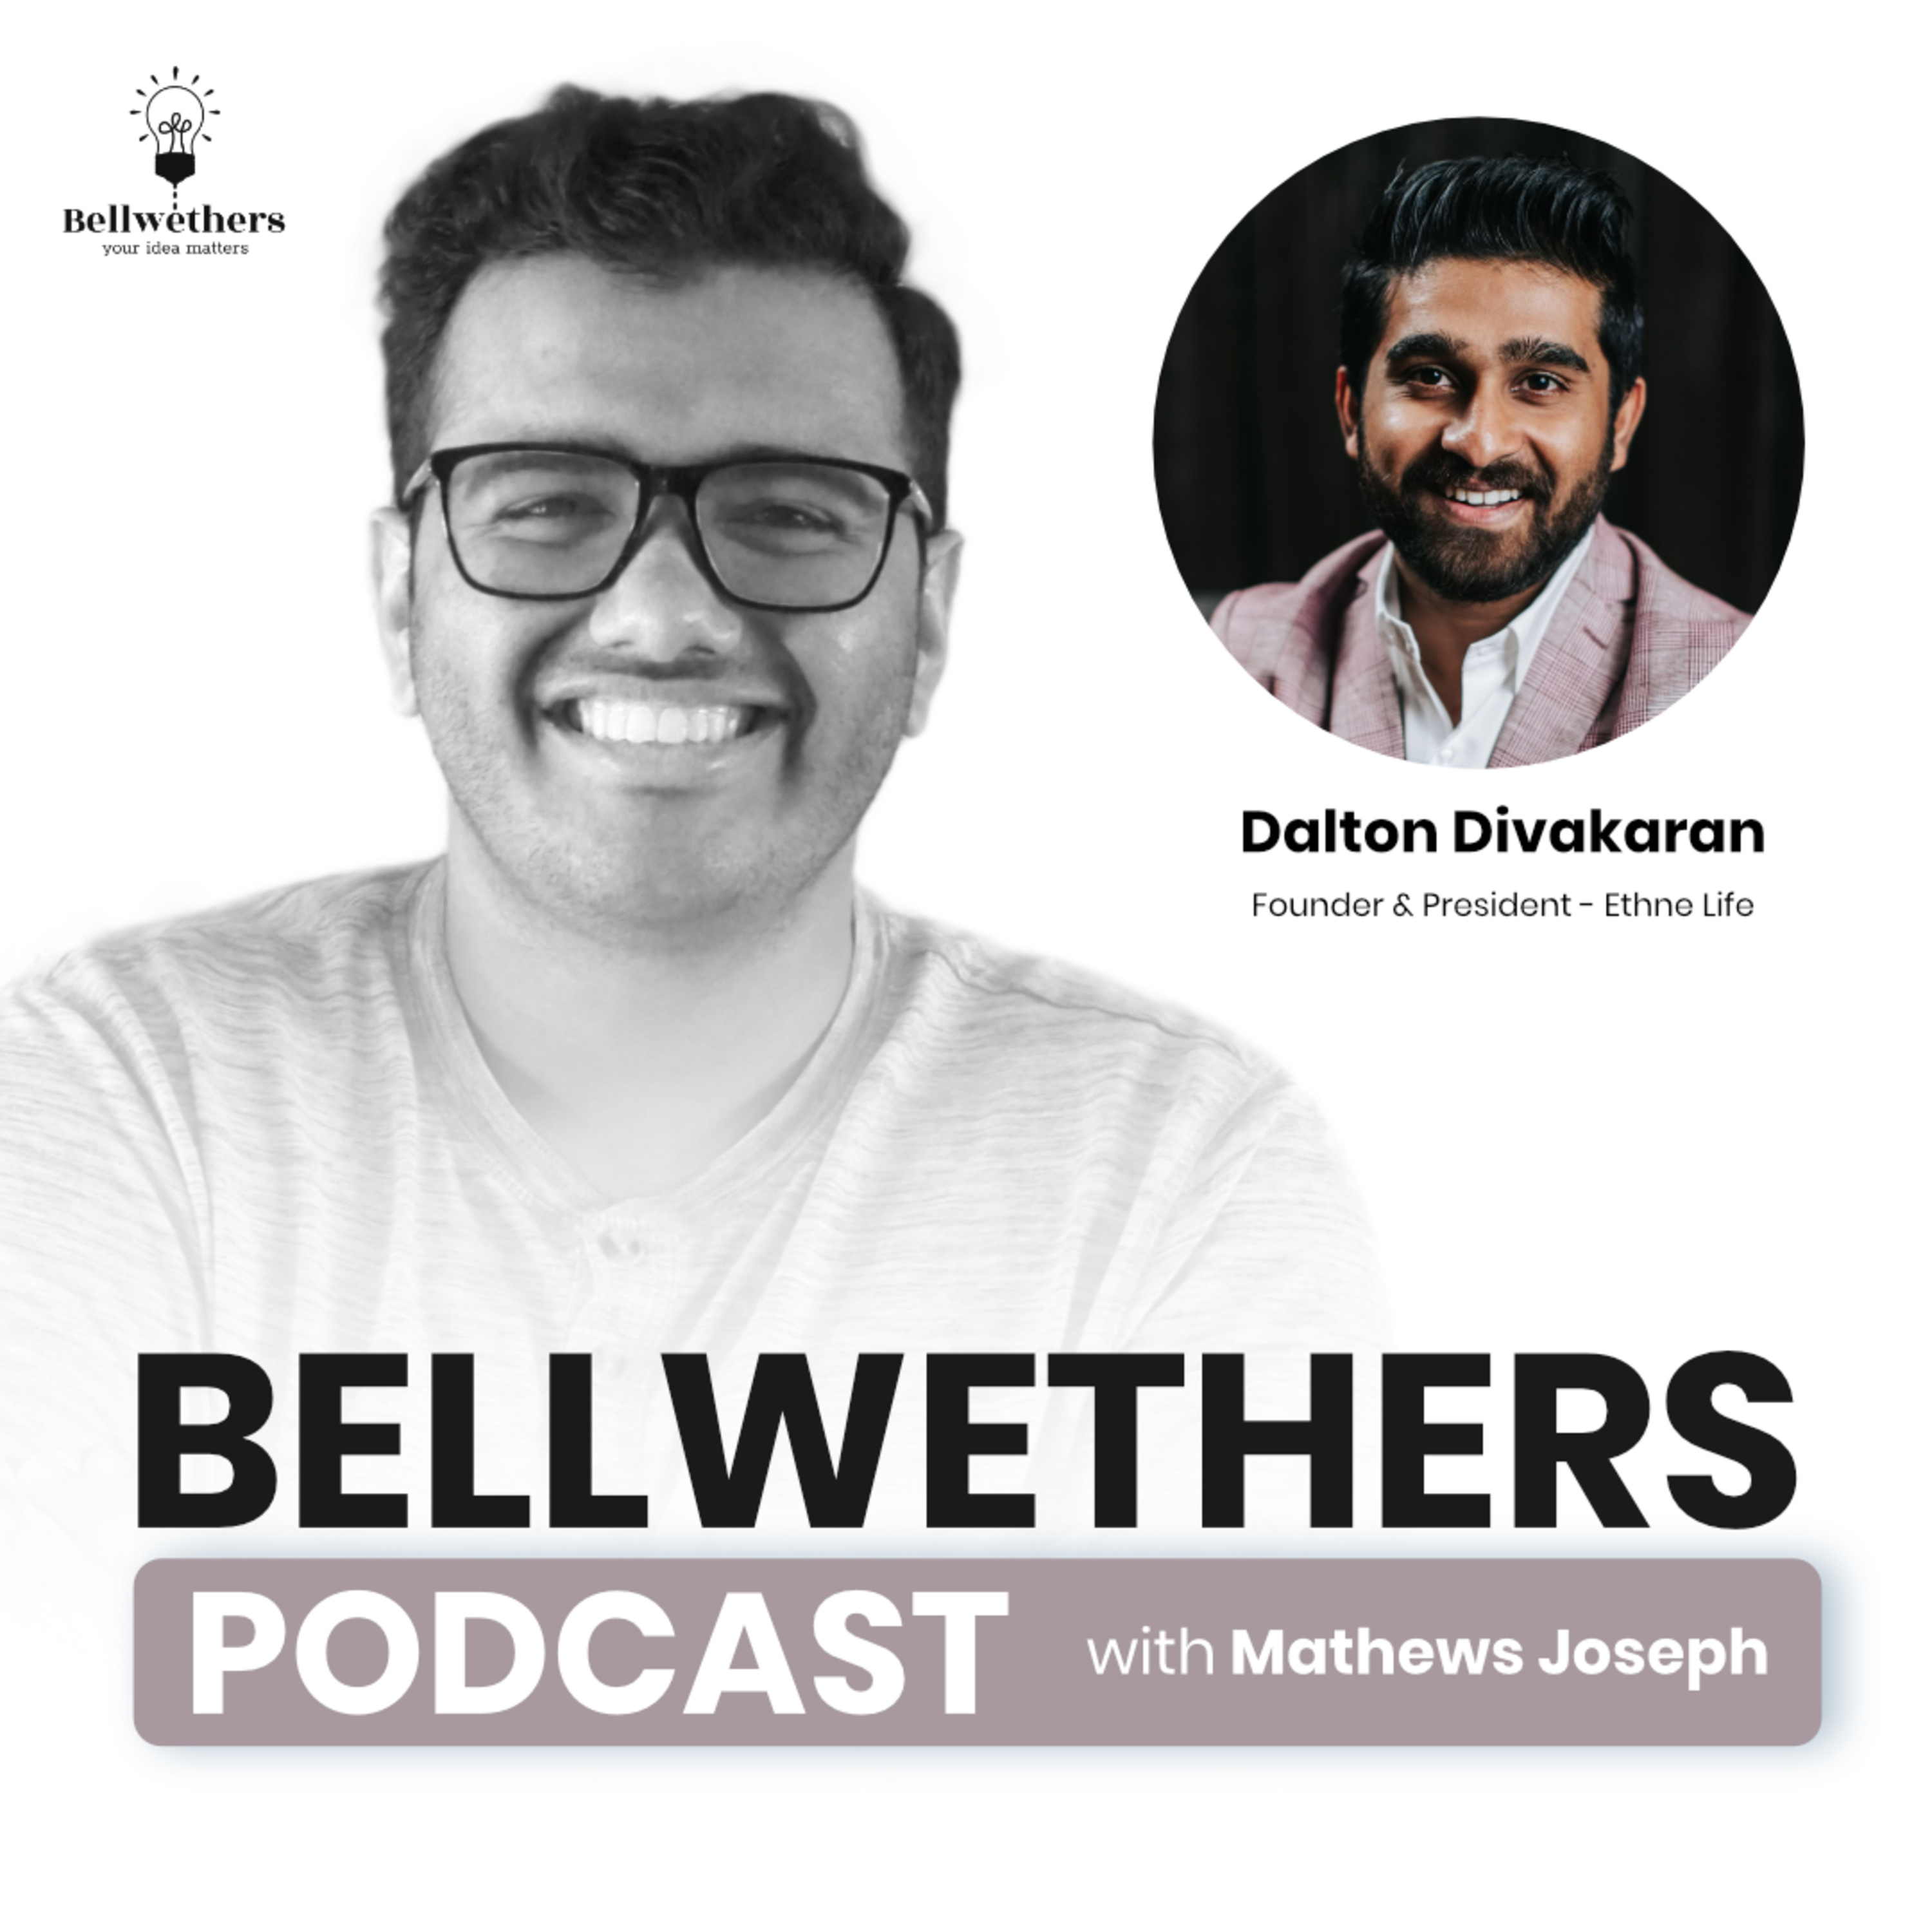 Bellwethers Podcast